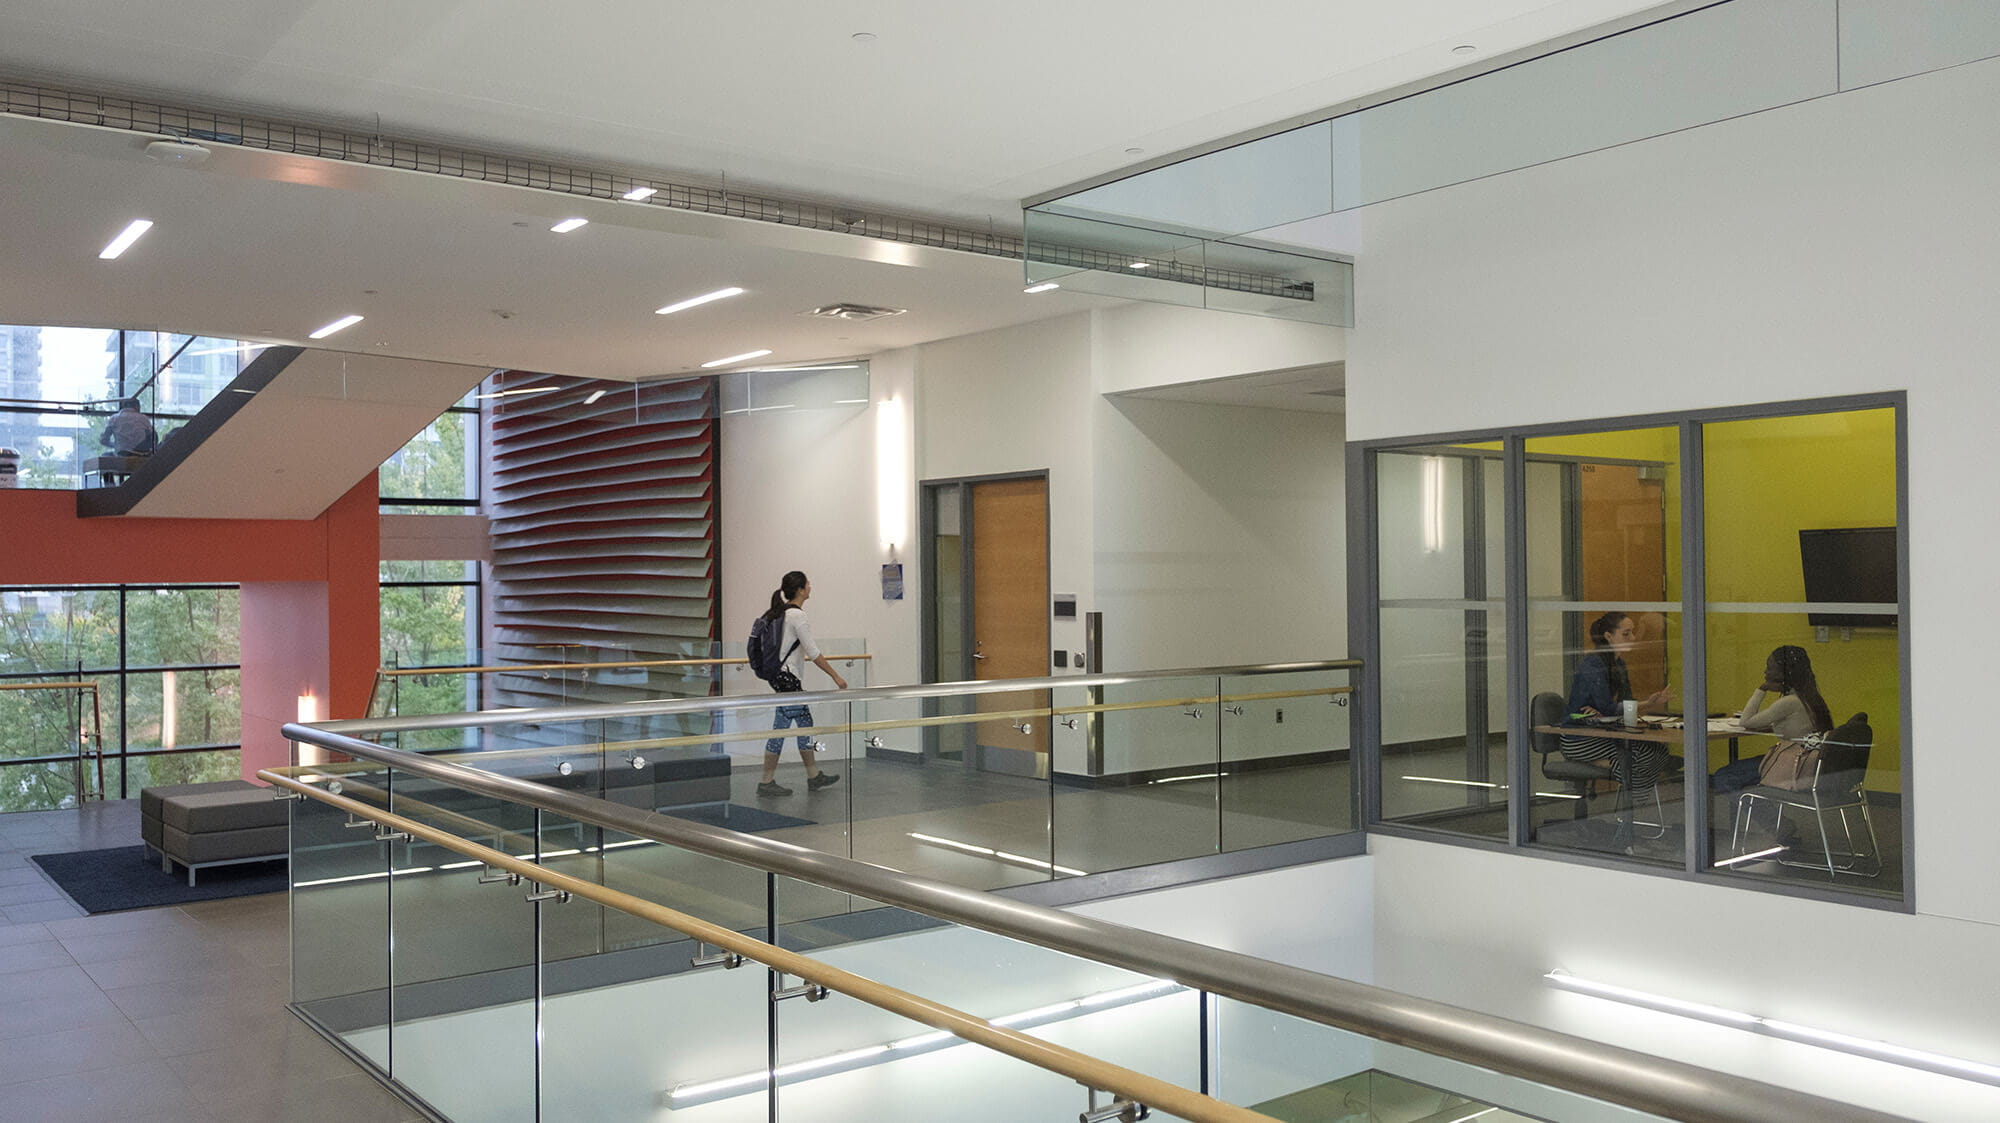 A hallway with stairs and a view inside a glass-walled Group Study Room